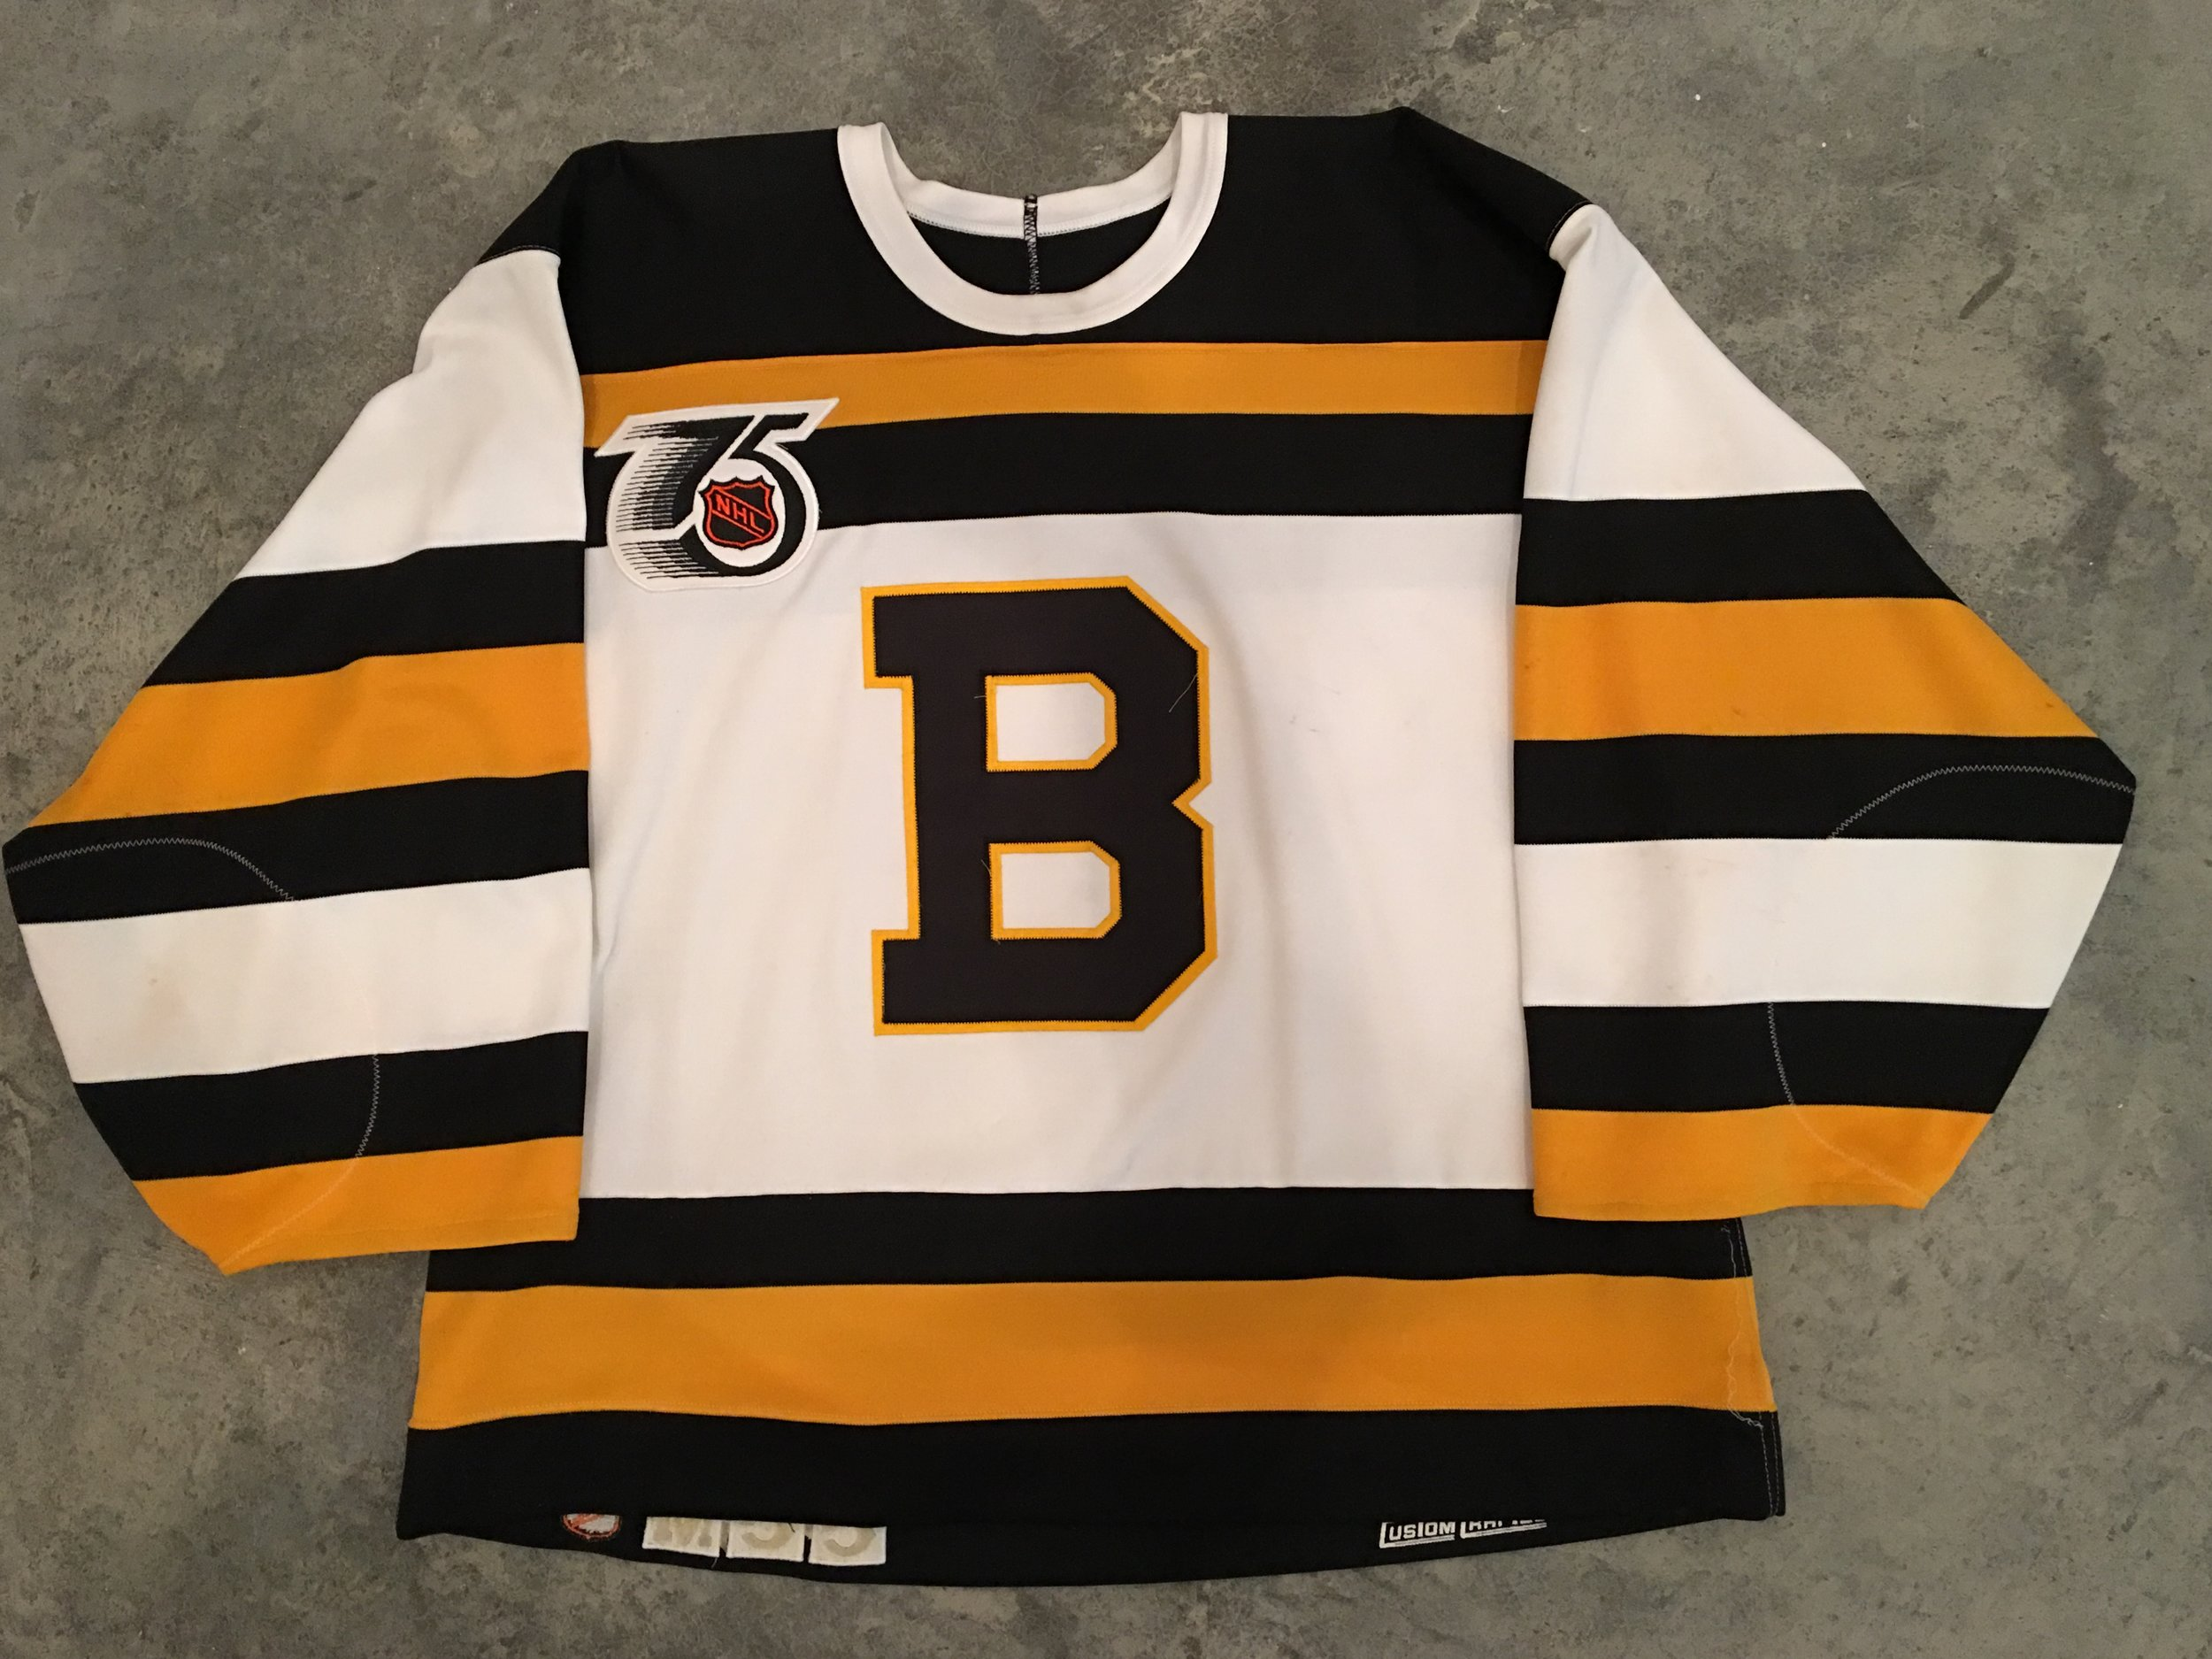 1991-92 Andy Moog Boston Bruins TBTC Game Worn Jersey